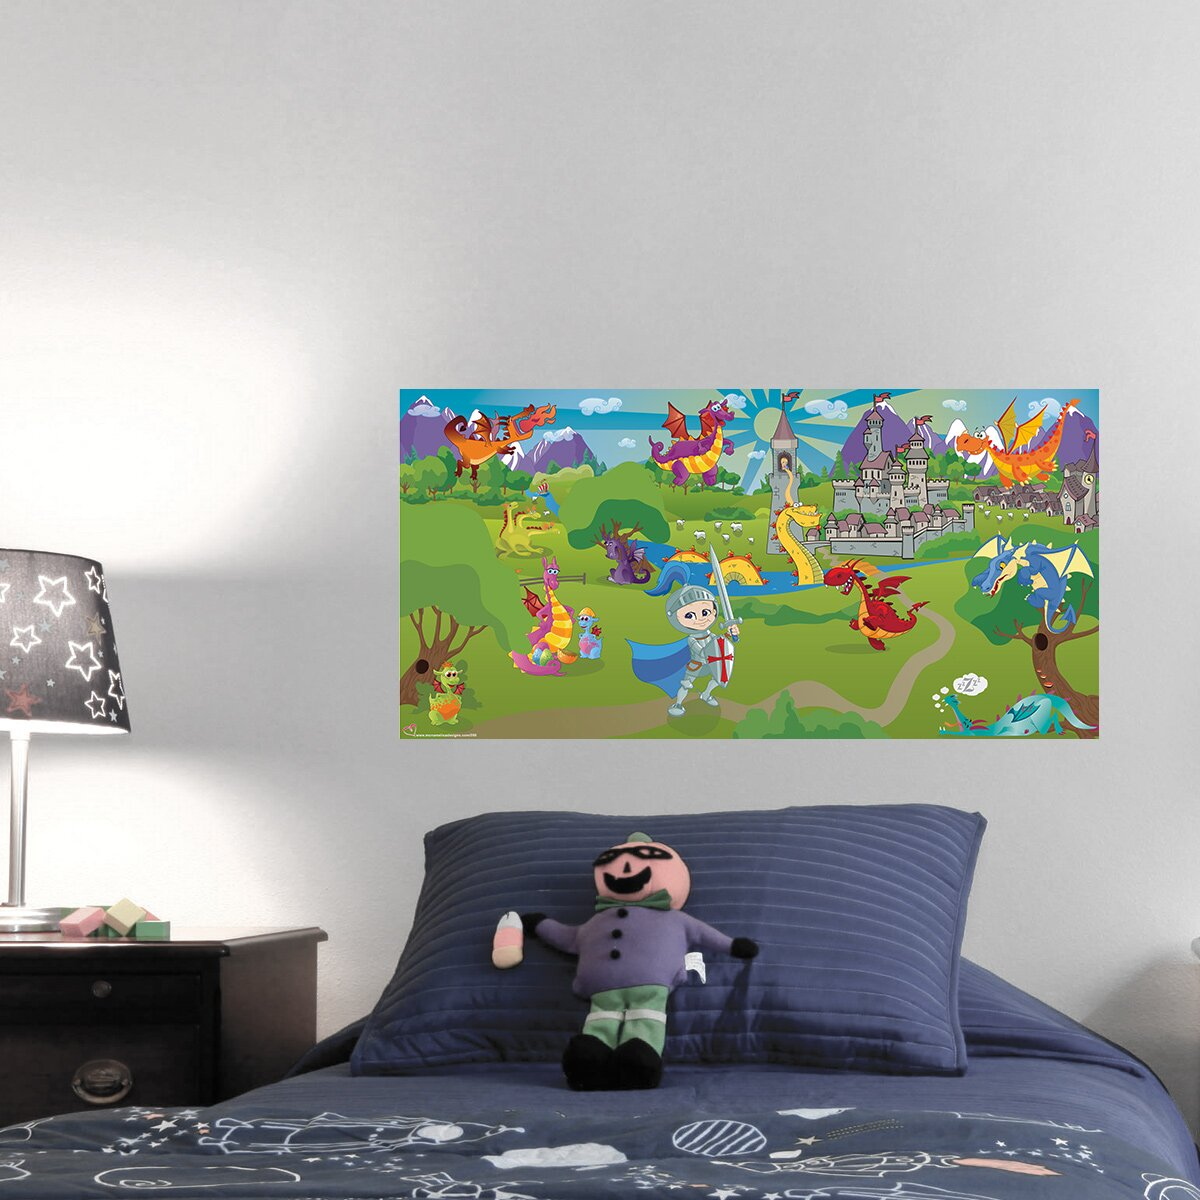 Mona melisa designs knight dragon wall mural wayfair for Dragon mural for wall